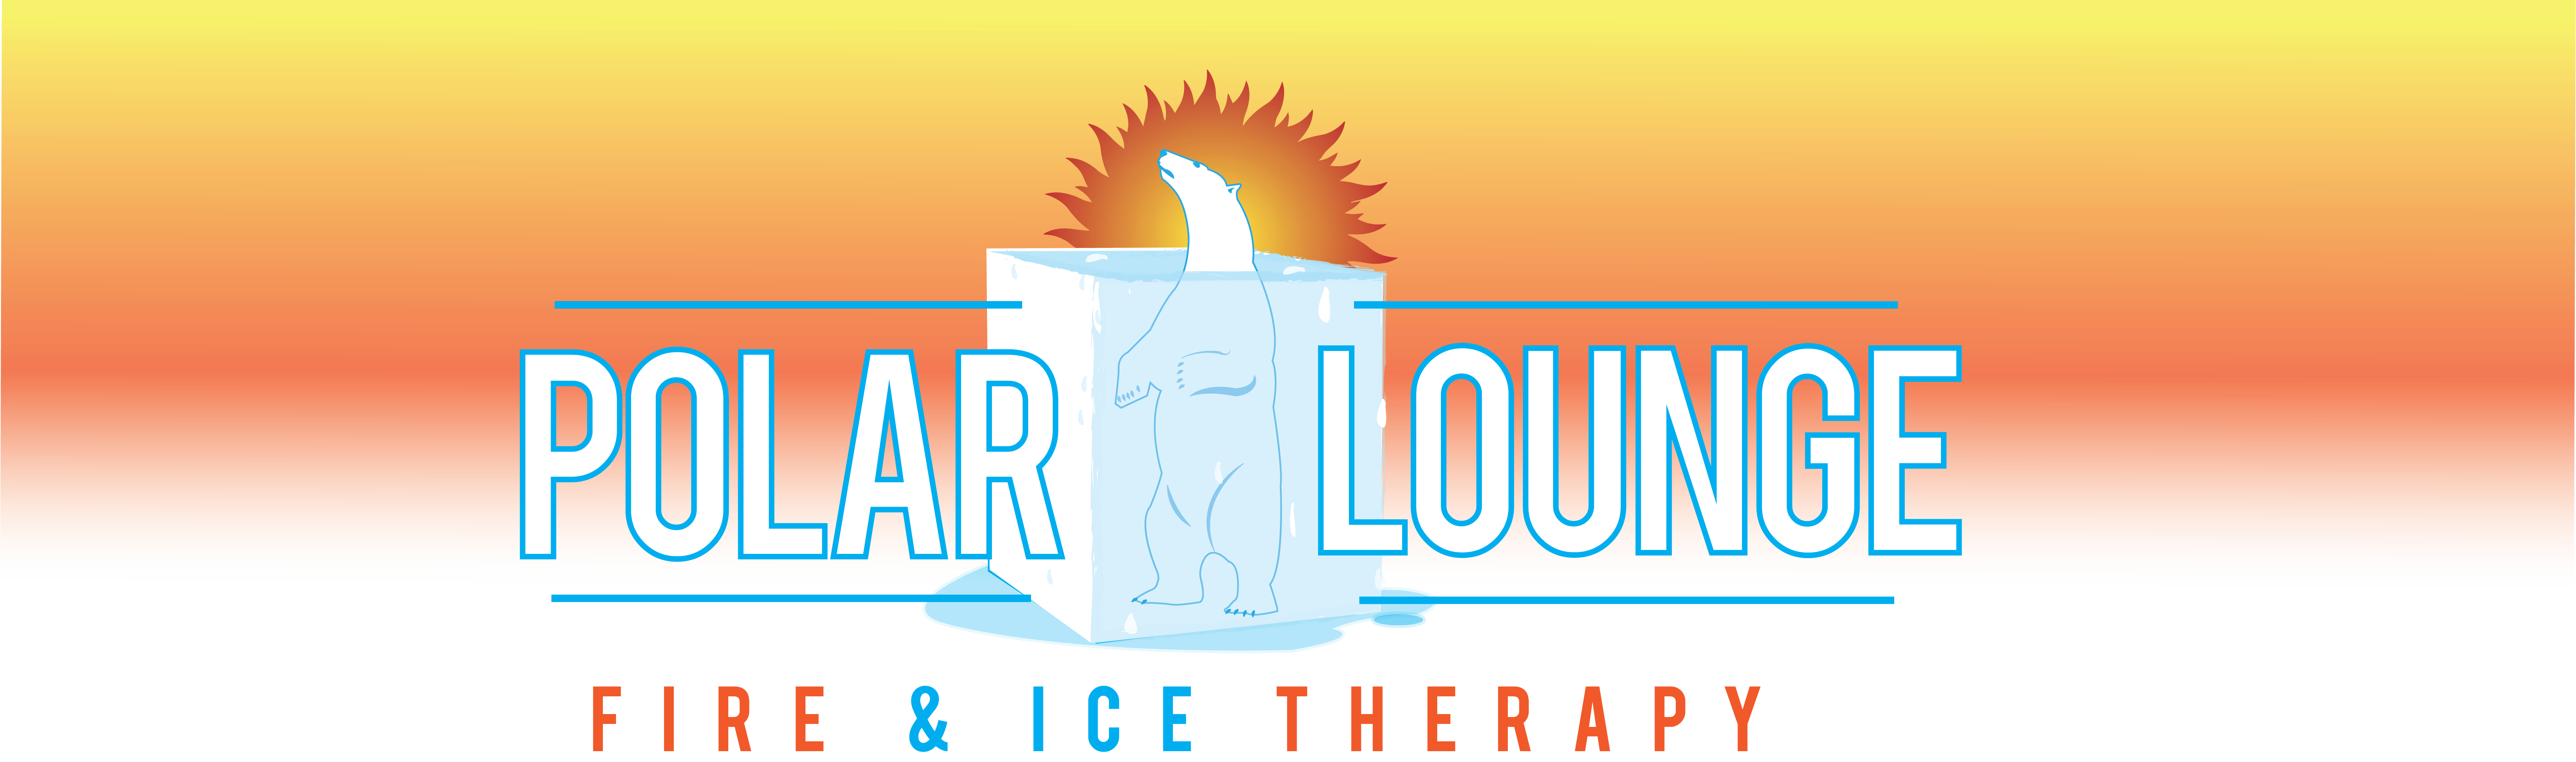 The Polar Lounge